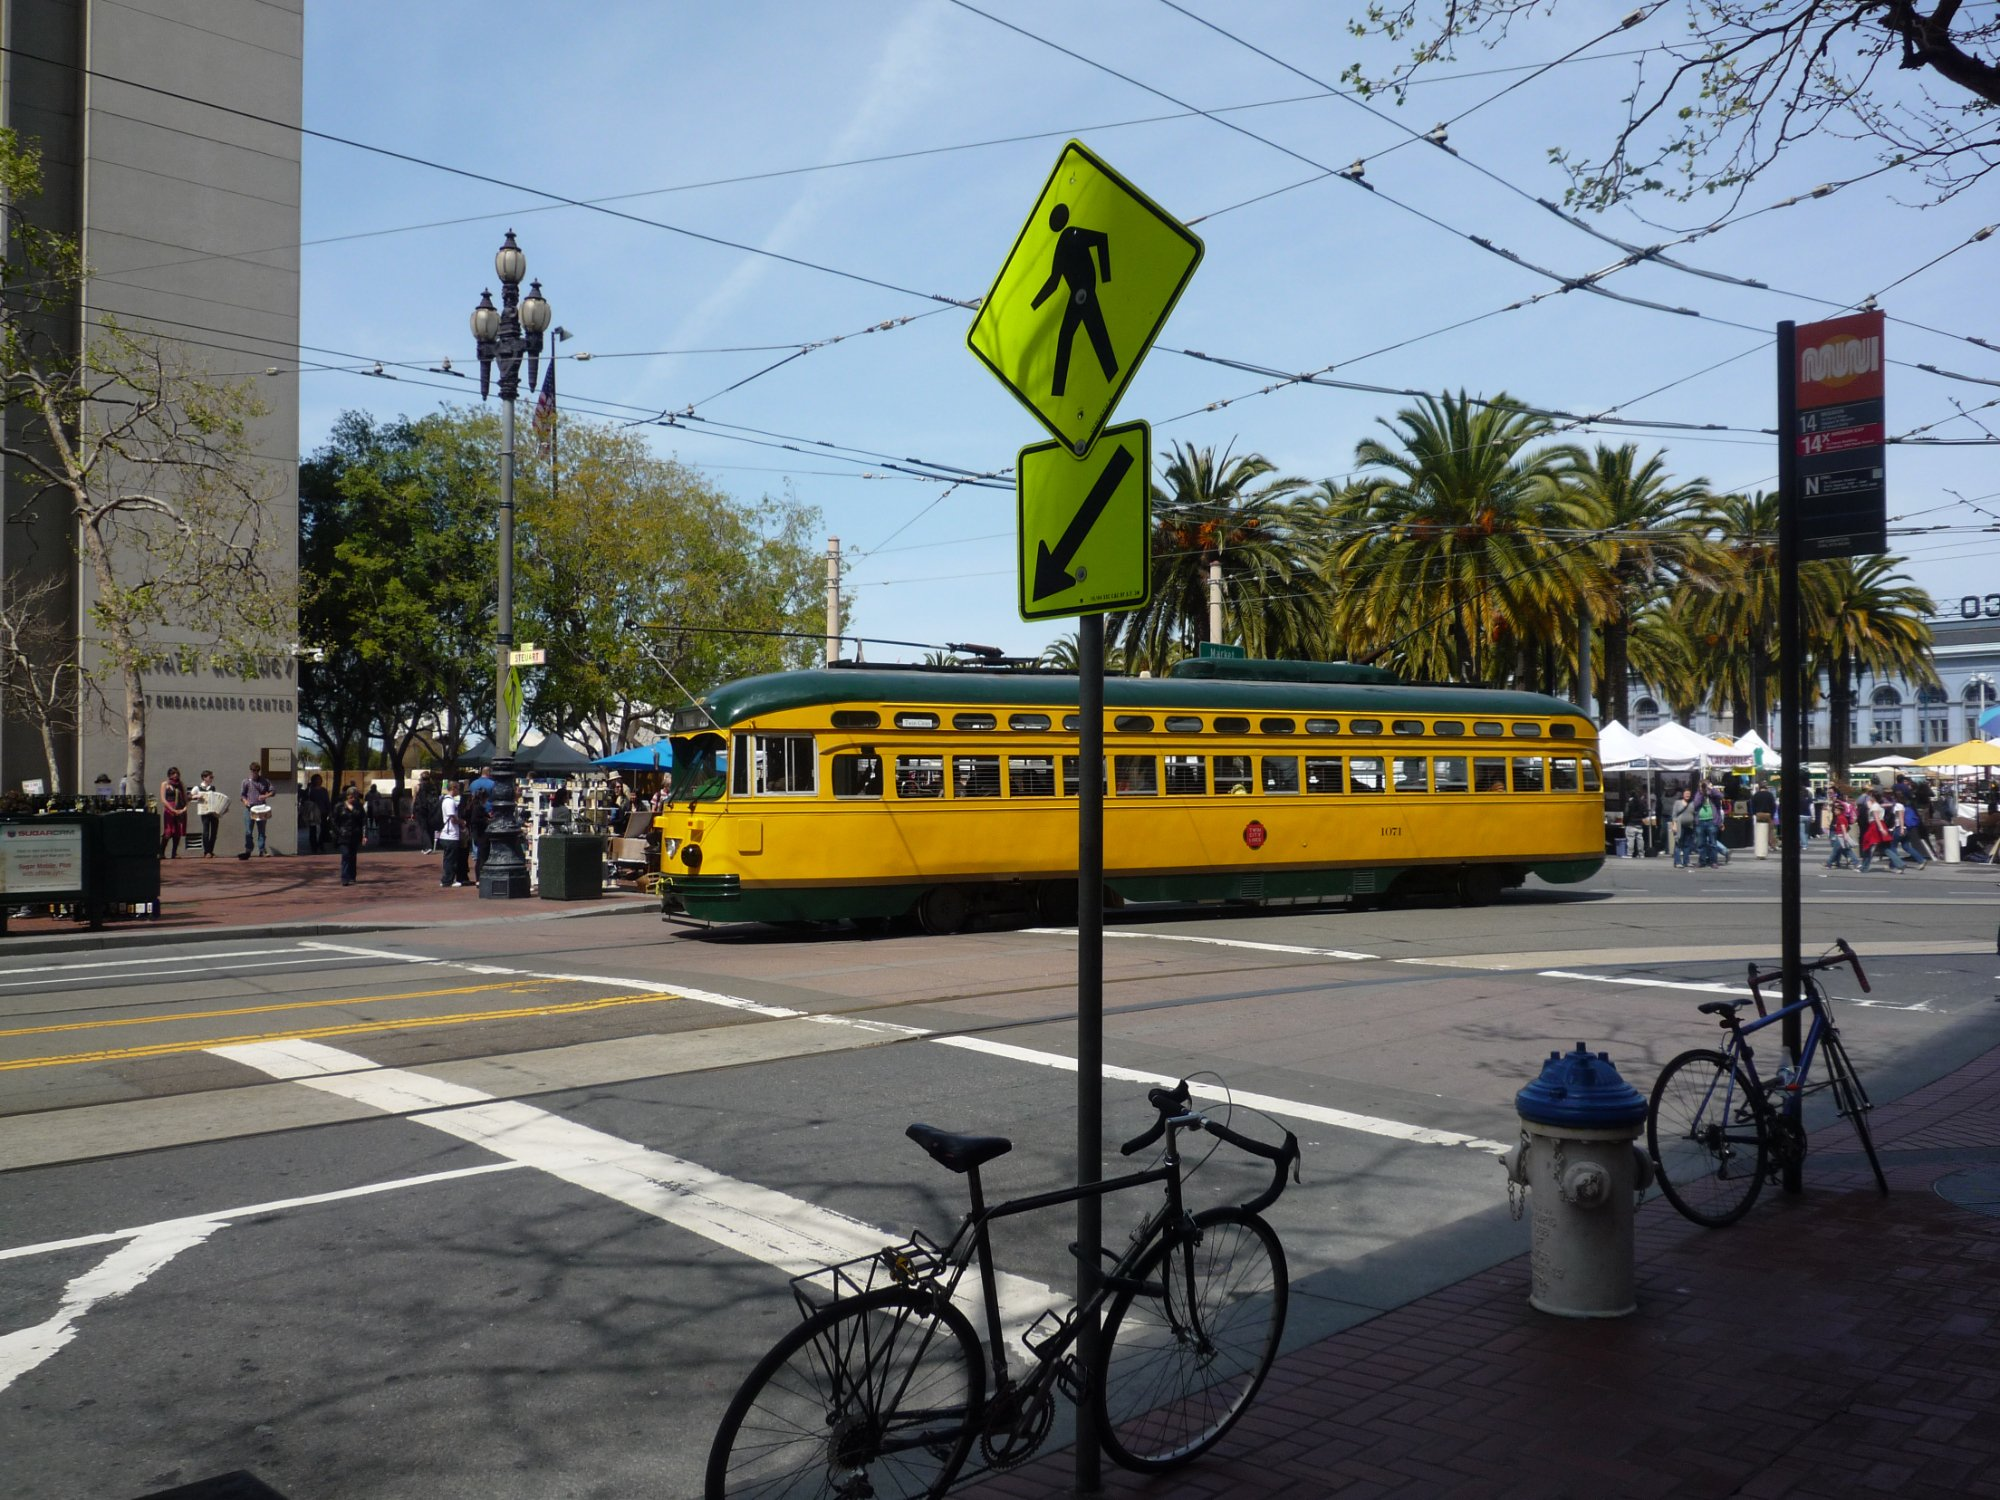 One of many trams